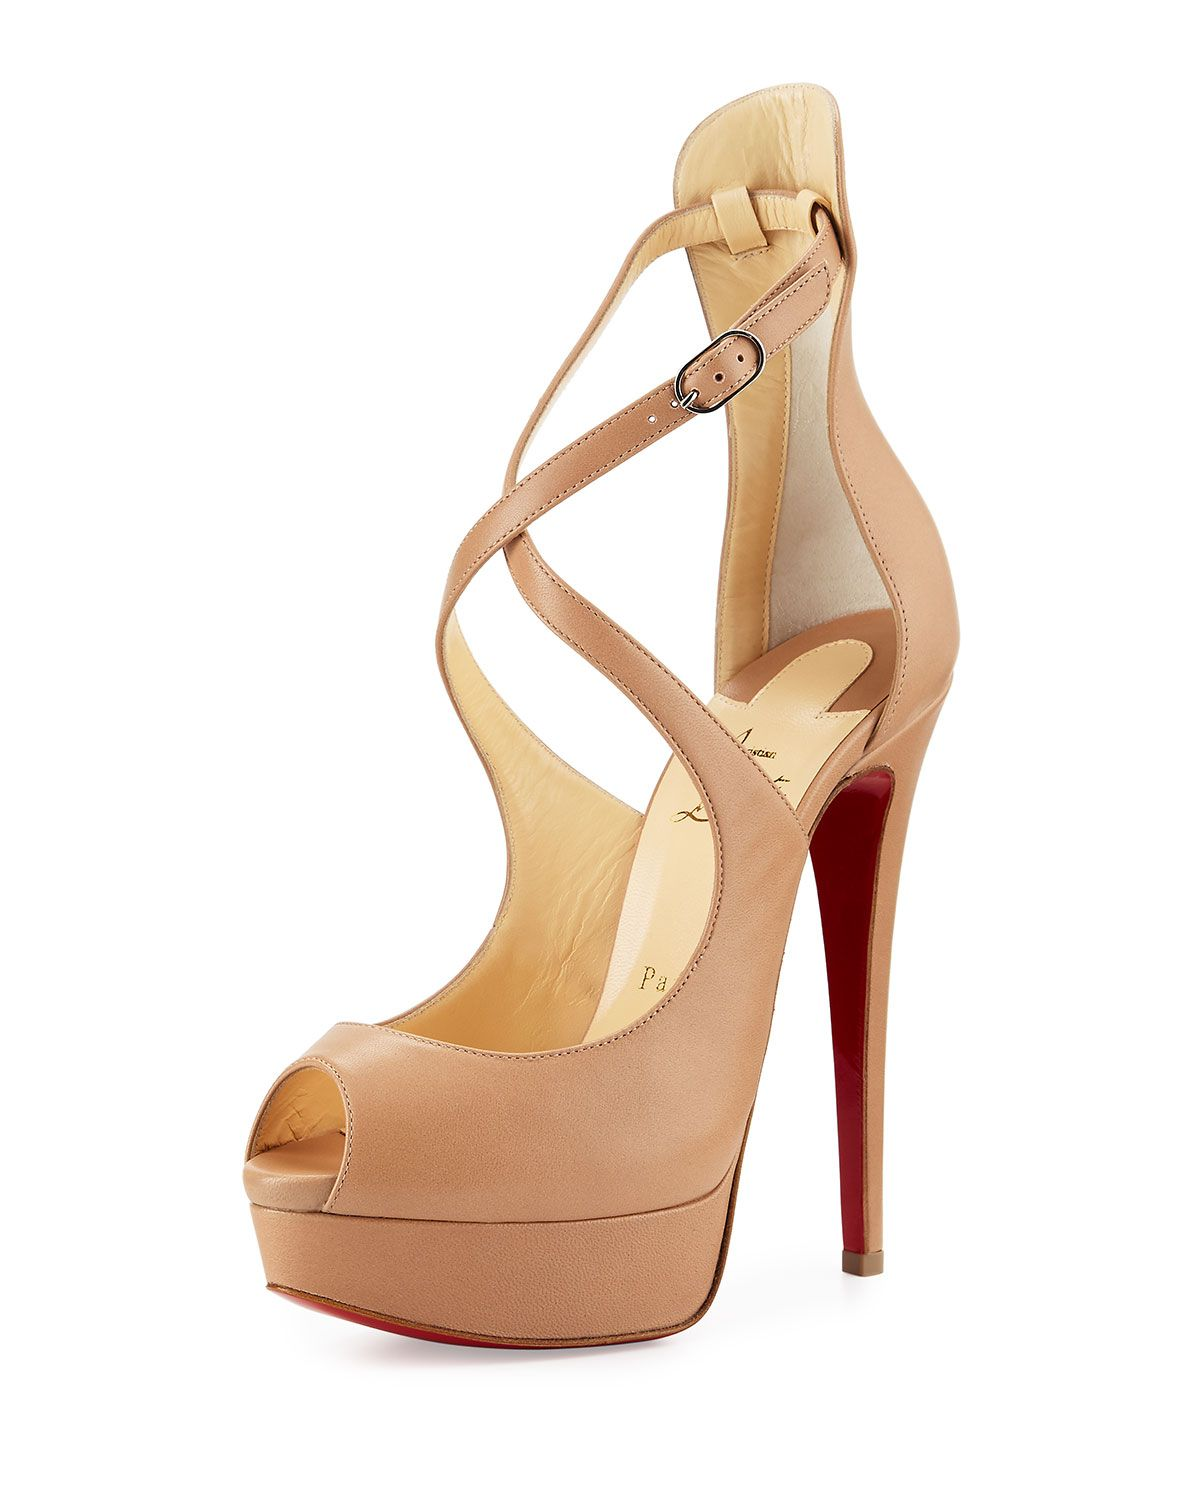 online store 9d399 39af9 Christian Louboutin Marlenalta Leather 150mm Red Sole Pump ...